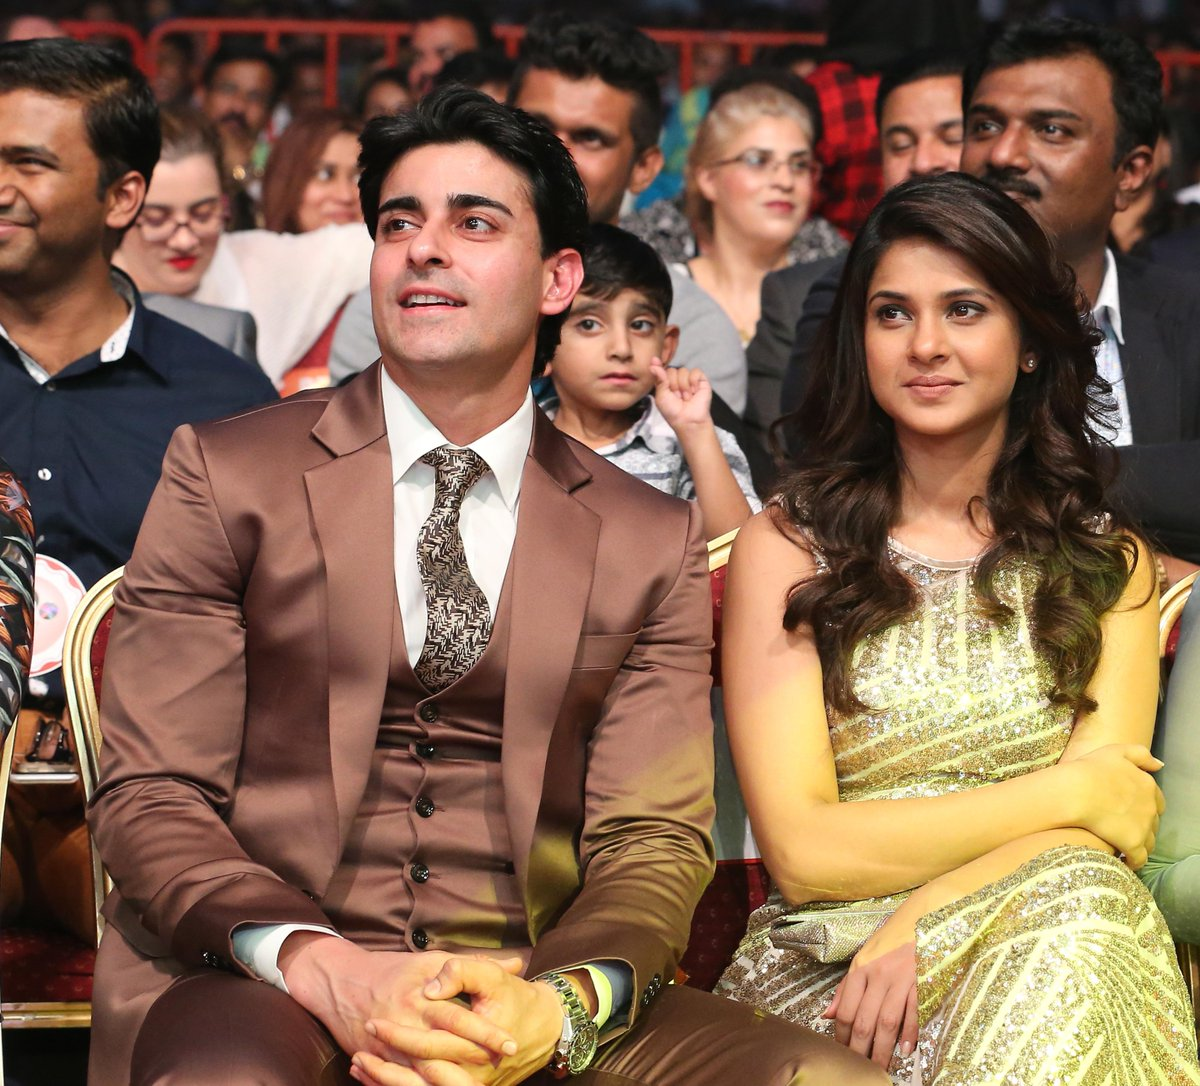 Because of the constant demand from @gautam_rode and @jenwinget fans ,a photo of both together at #AsiavisionAwards http://t.co/hkyCi59nQw